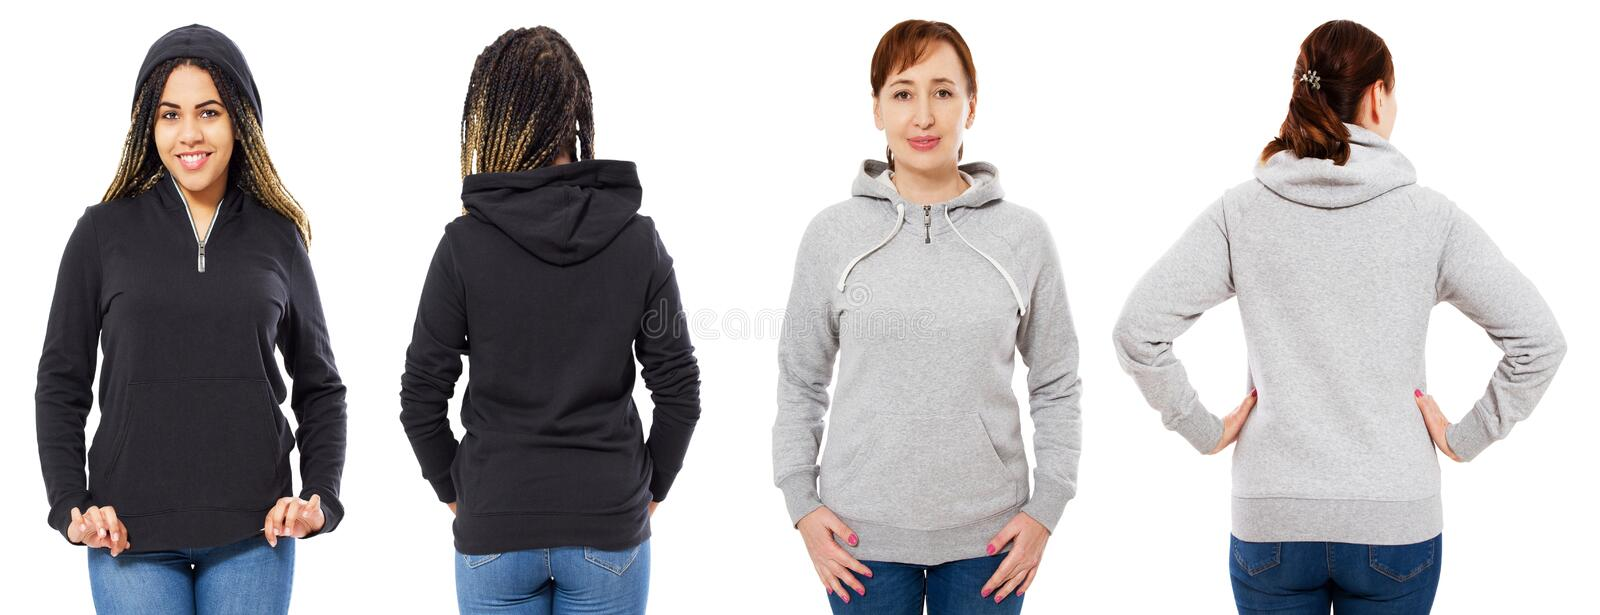 Girl in stylish black hoodie isolated on white background : girl in grey hood front and back view isolated royalty free stock images